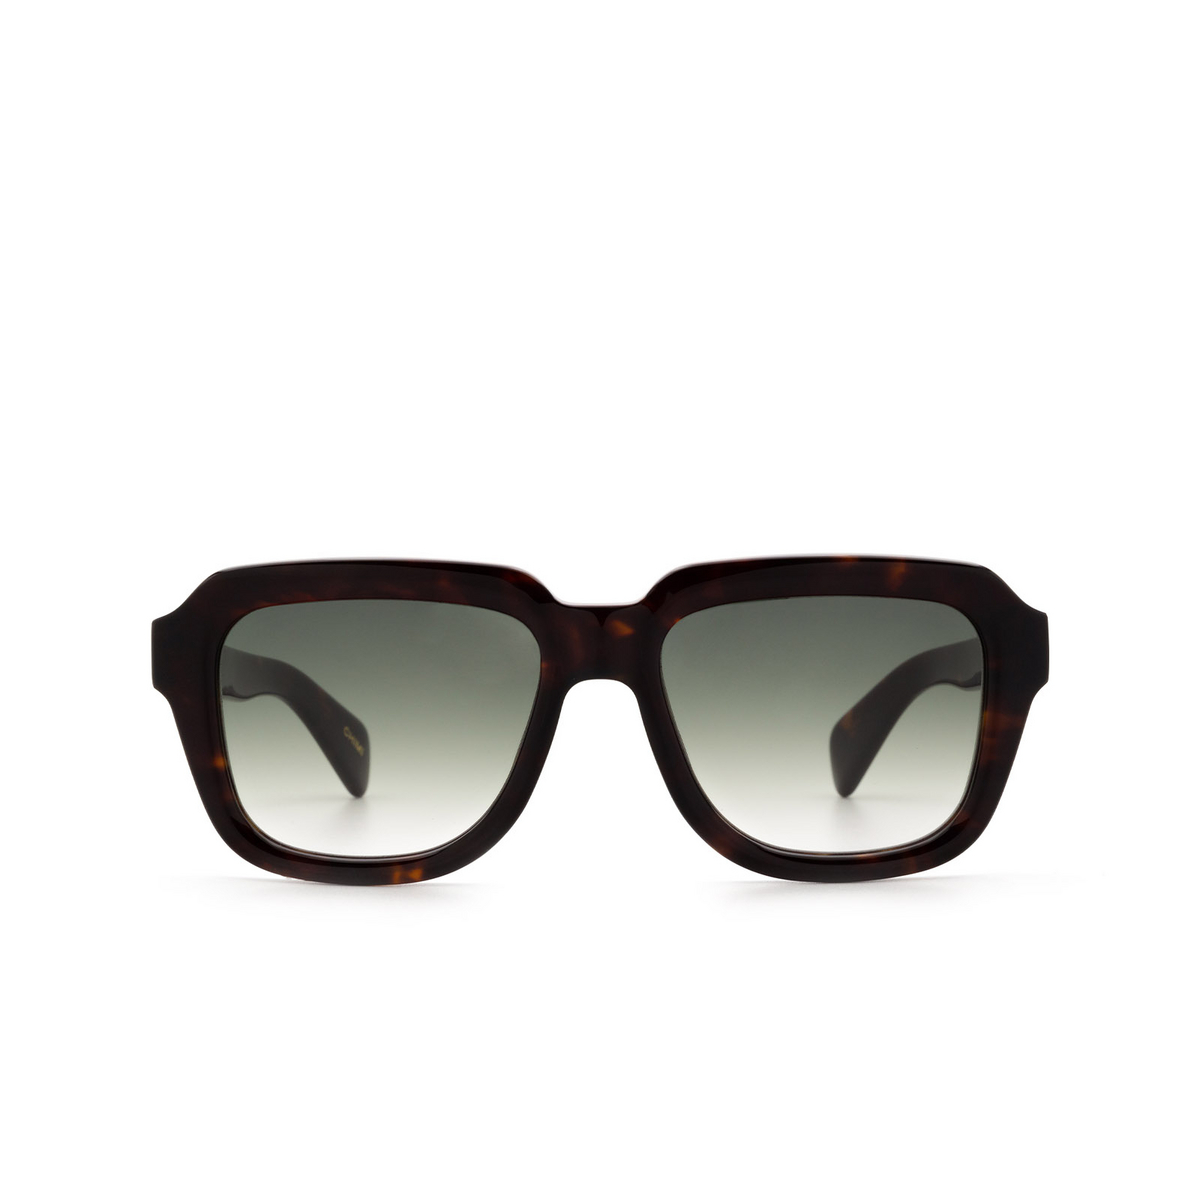 Chimi® Square Sunglasses: Voyage Navigator color Onyx - front view.